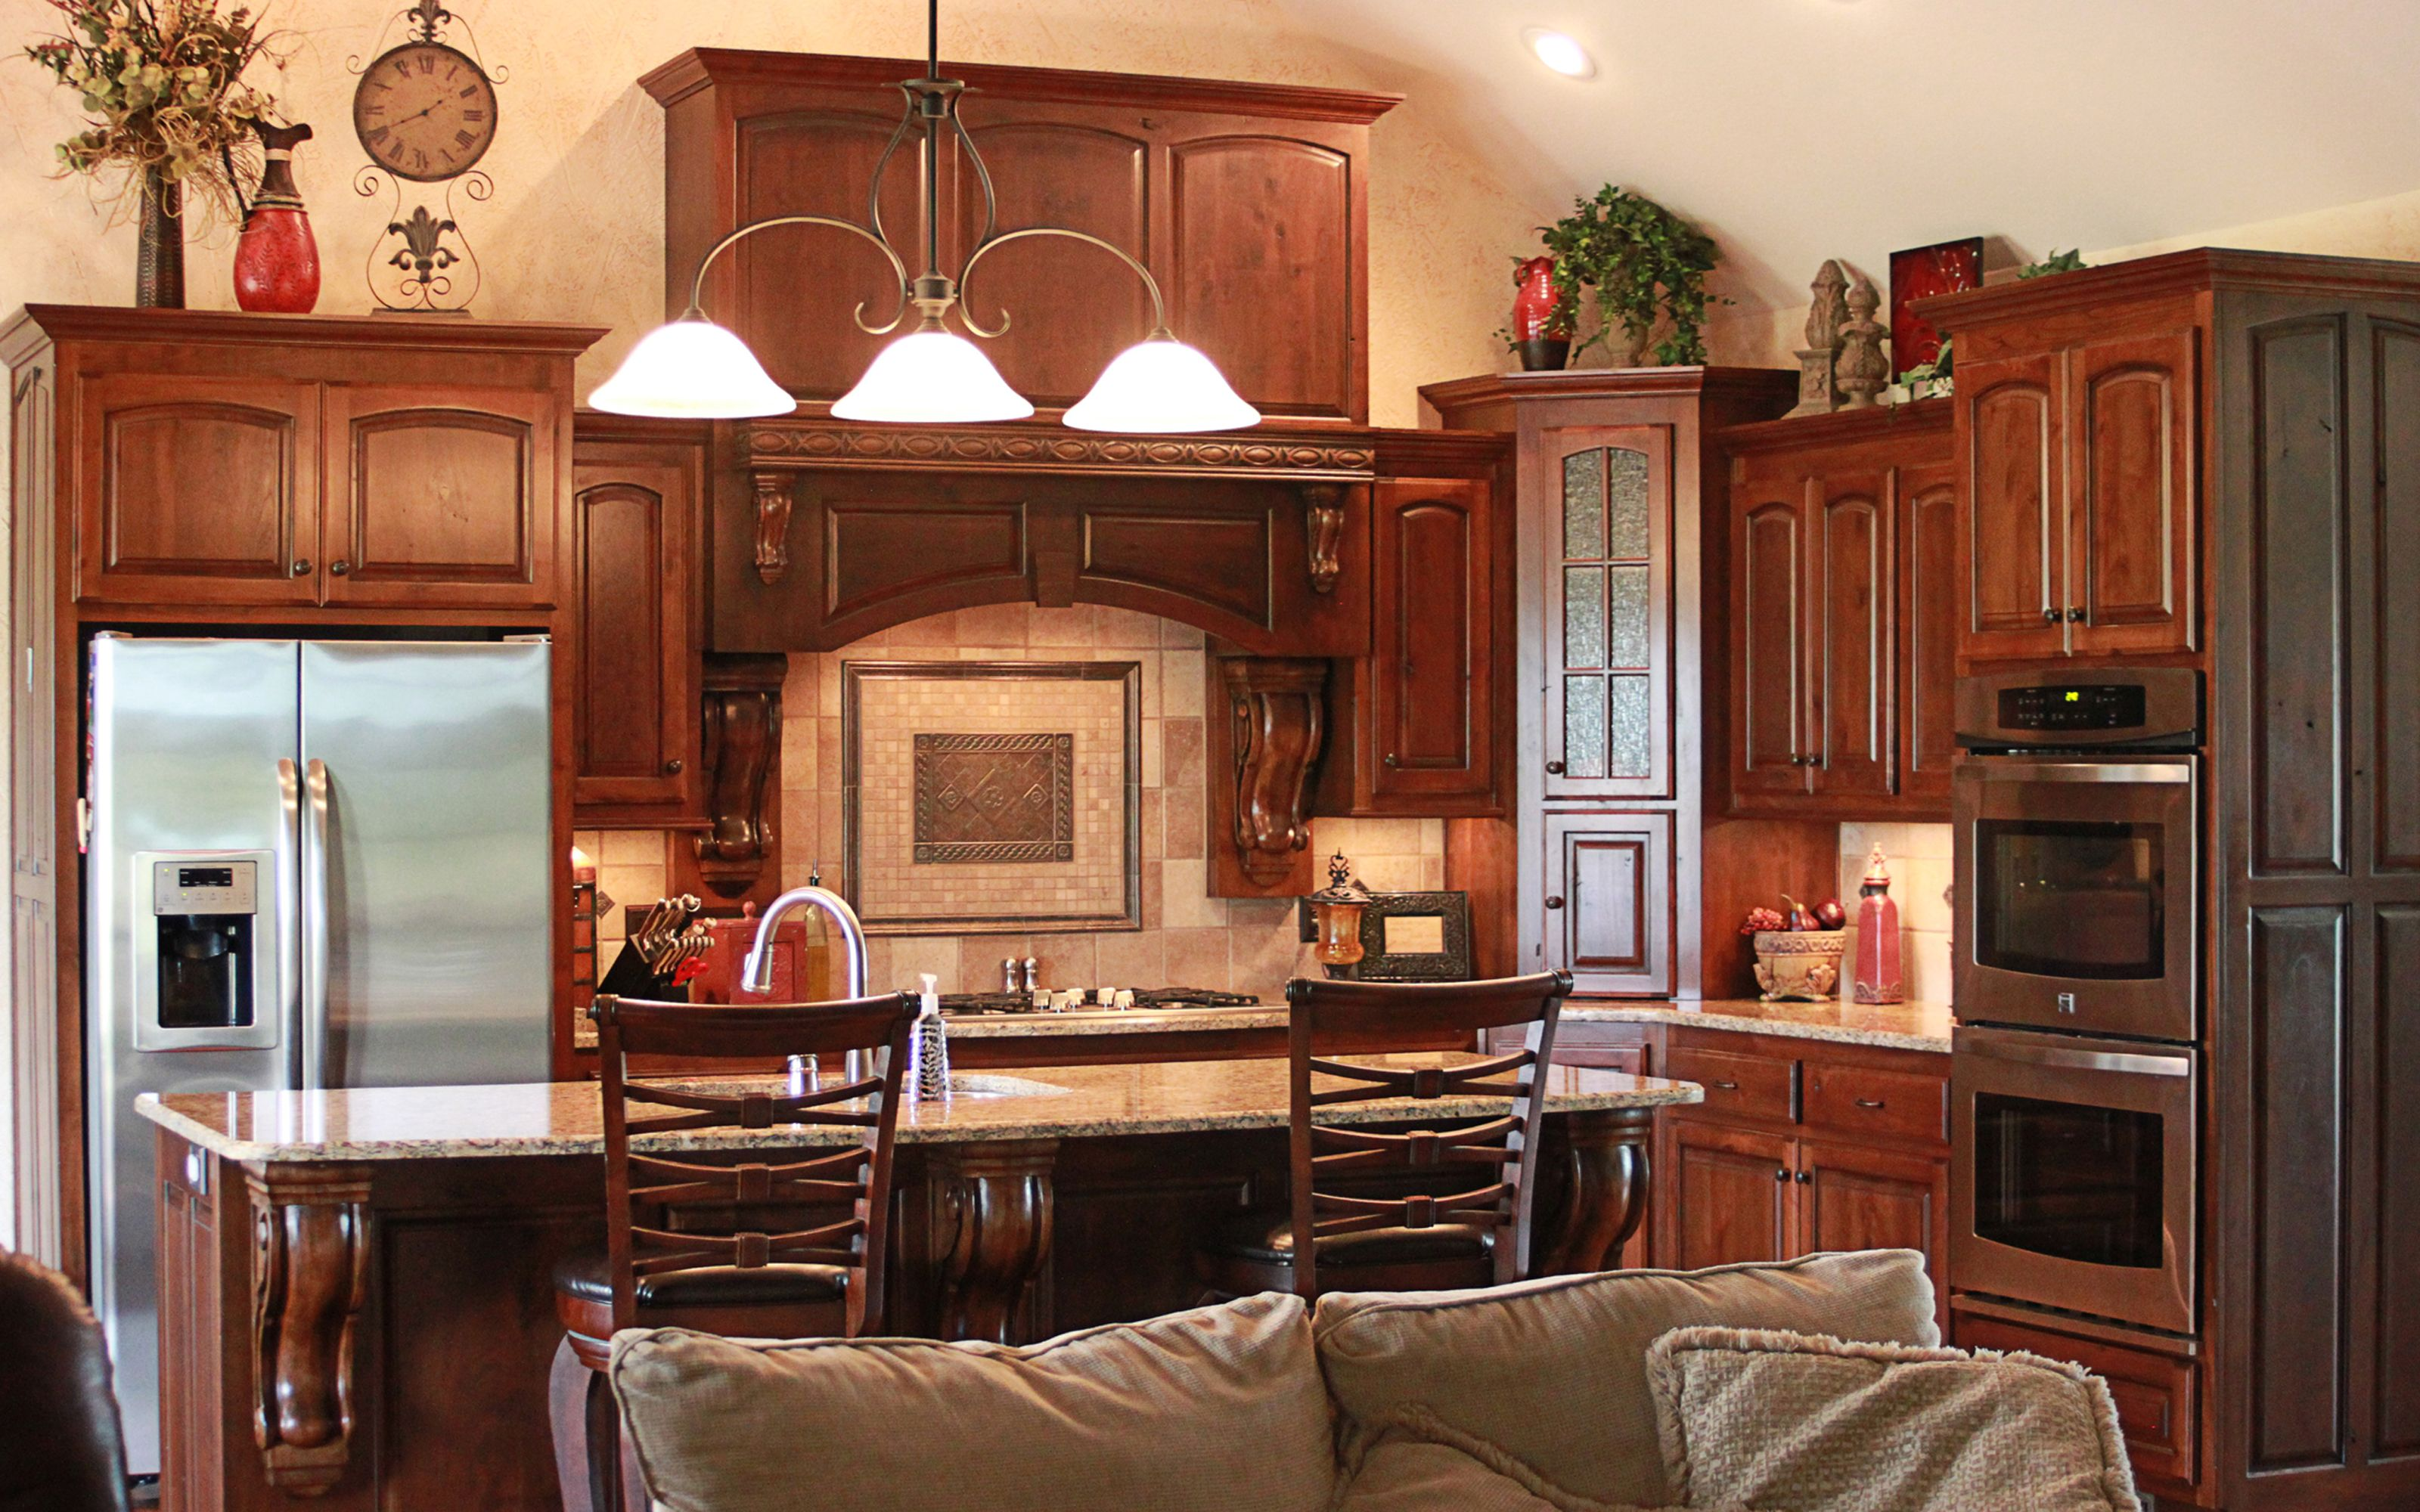 Pin By Cabinets Plus On Rustic Cherry Cabinets Kitchen Cabinets And Granite Cherry Cabinets Kitchen Rustic Cherry Cabinets